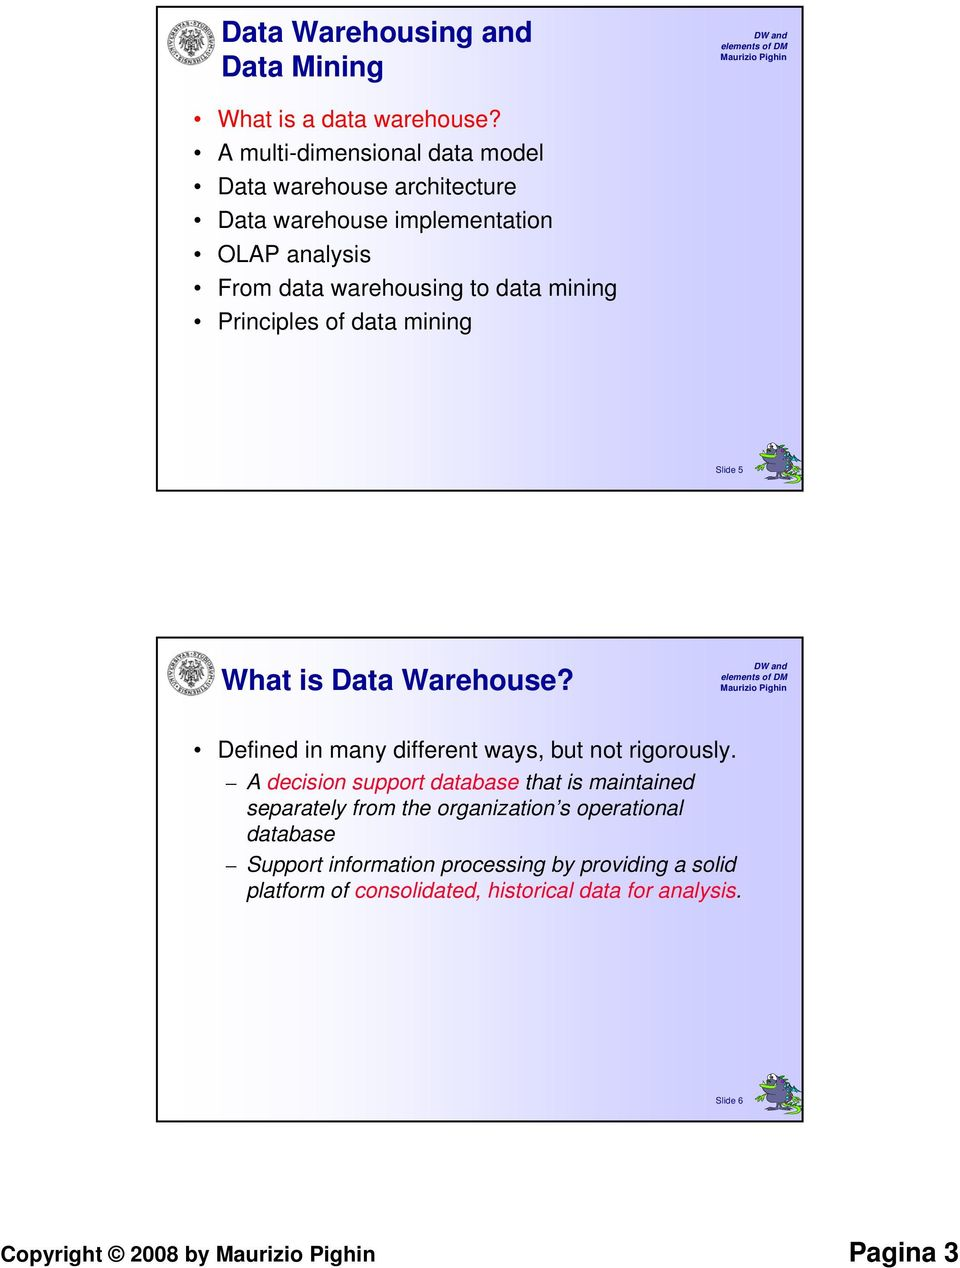 mining Principles of data mining Slide 5 What is Data Warehouse? Defined in many different ways, but not rigorously.